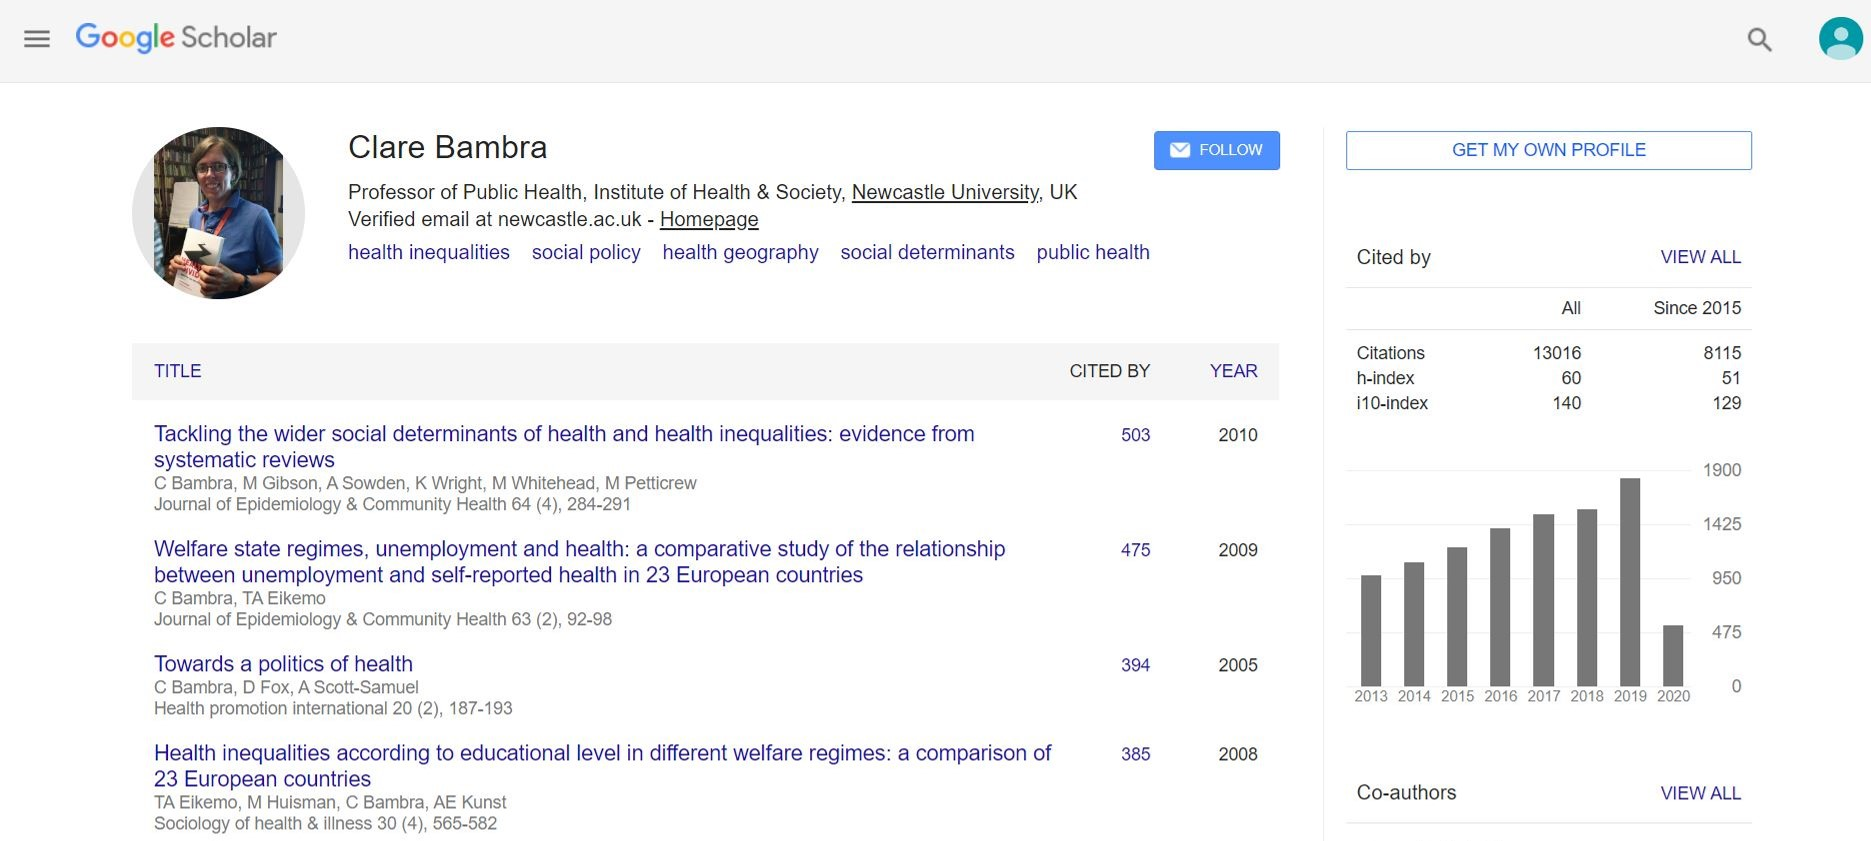 Example of Google Scholar citation profile.